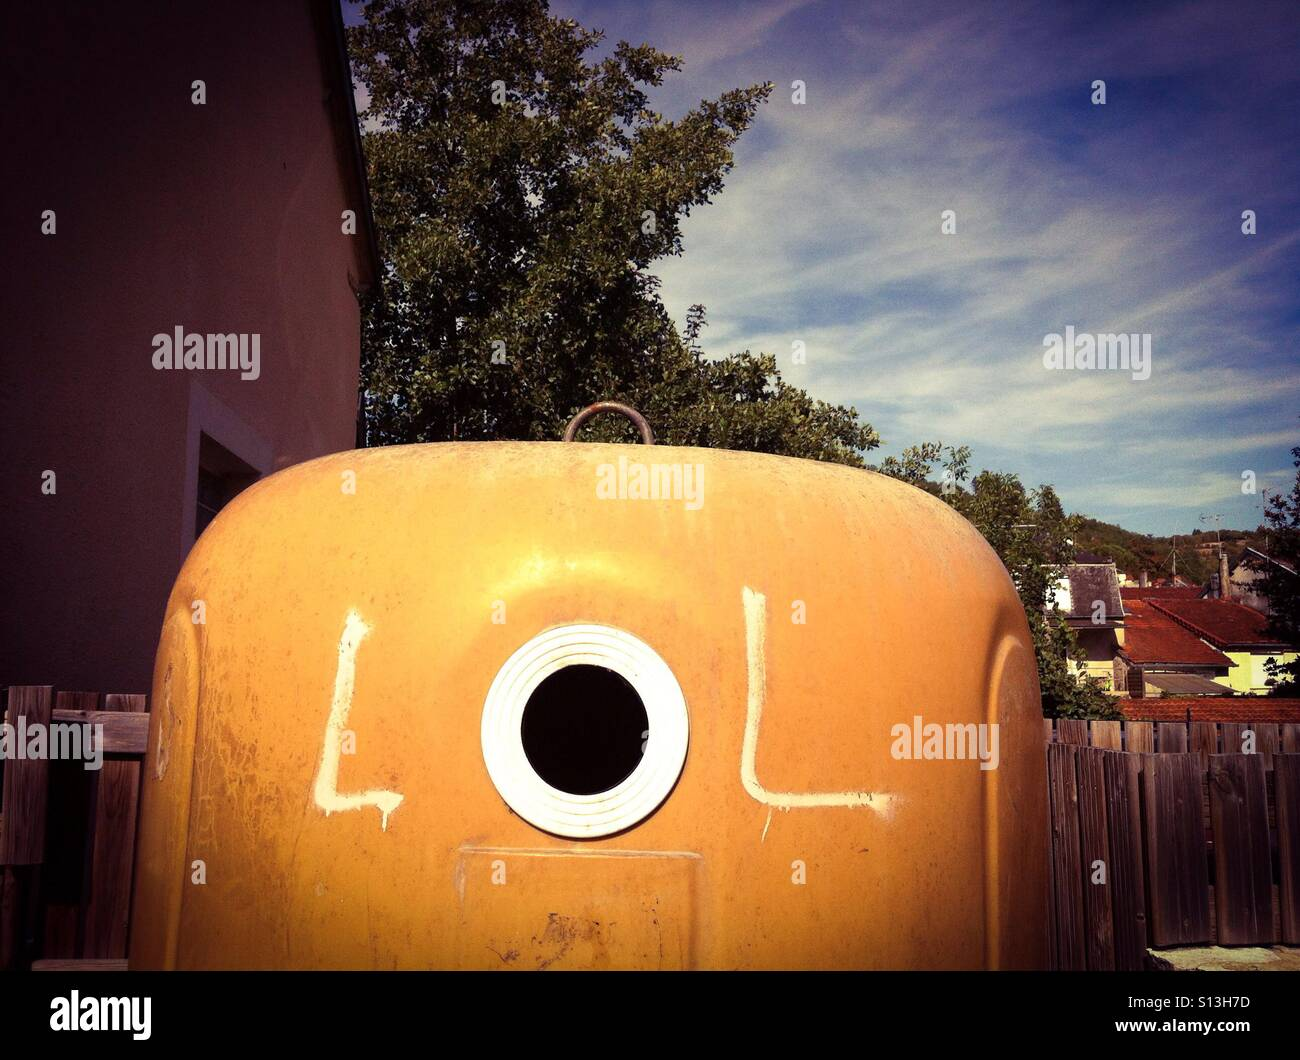 Graffiti on a recycling bin in France - Stock Image